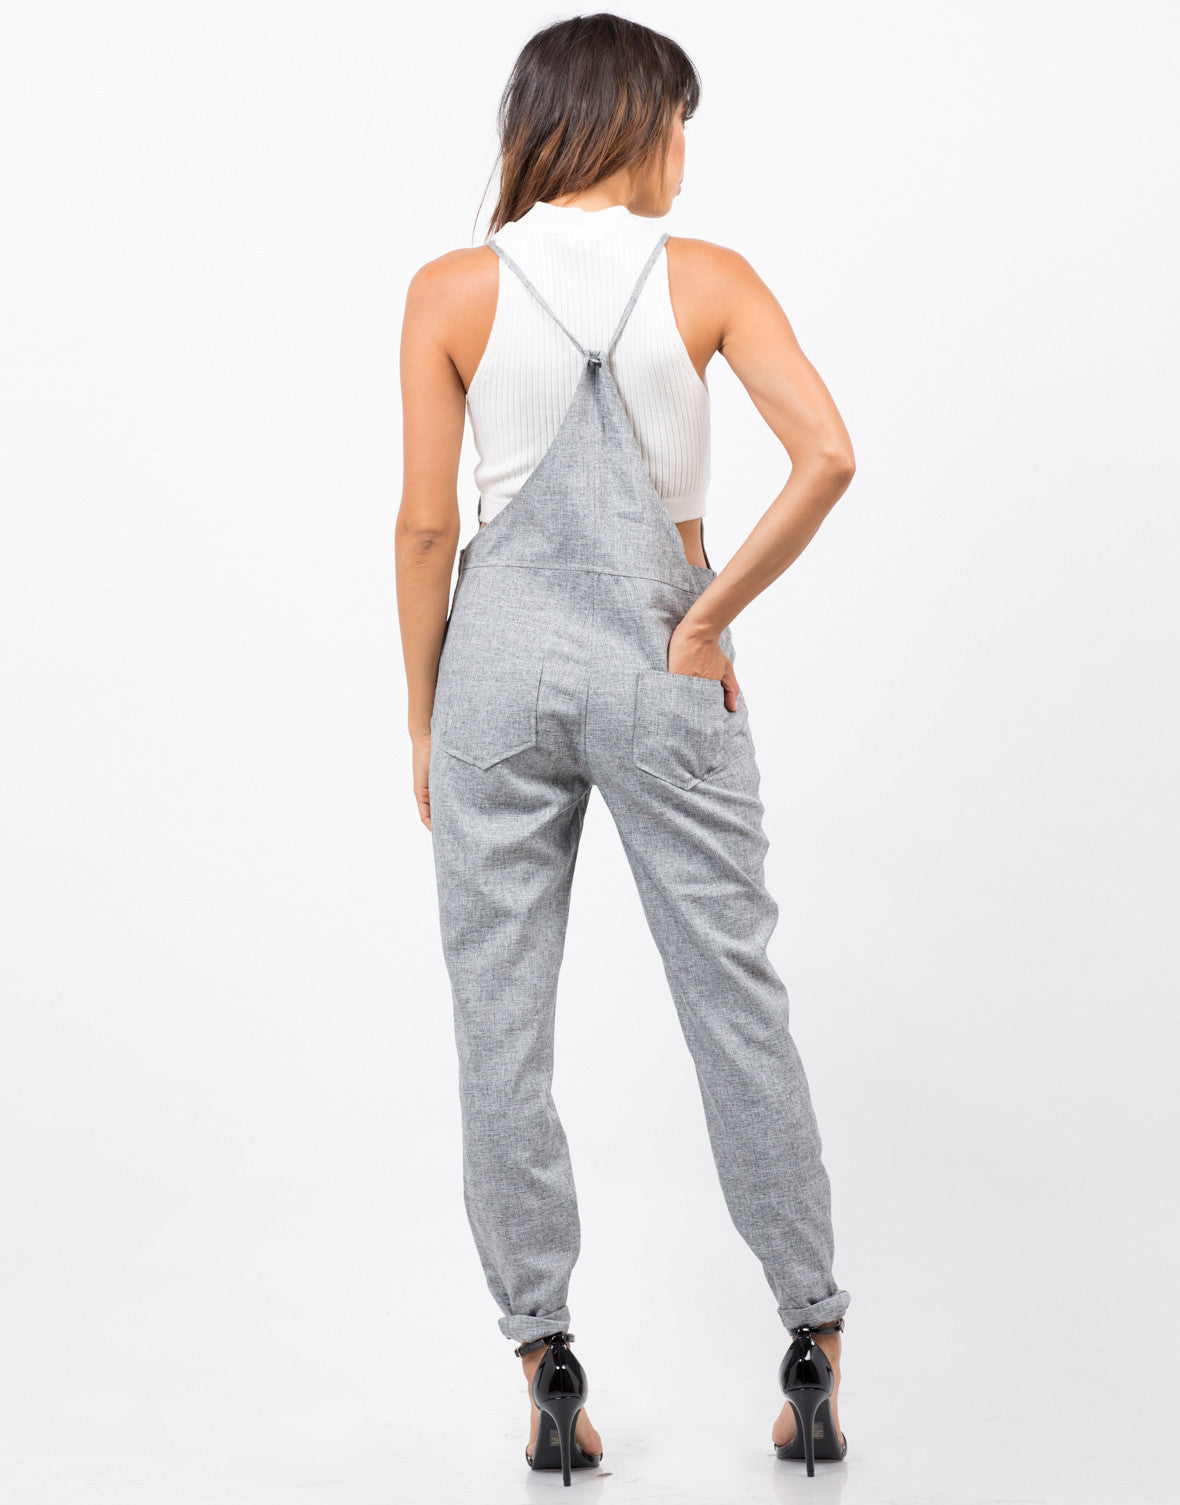 Back View of Sartorial Overalls